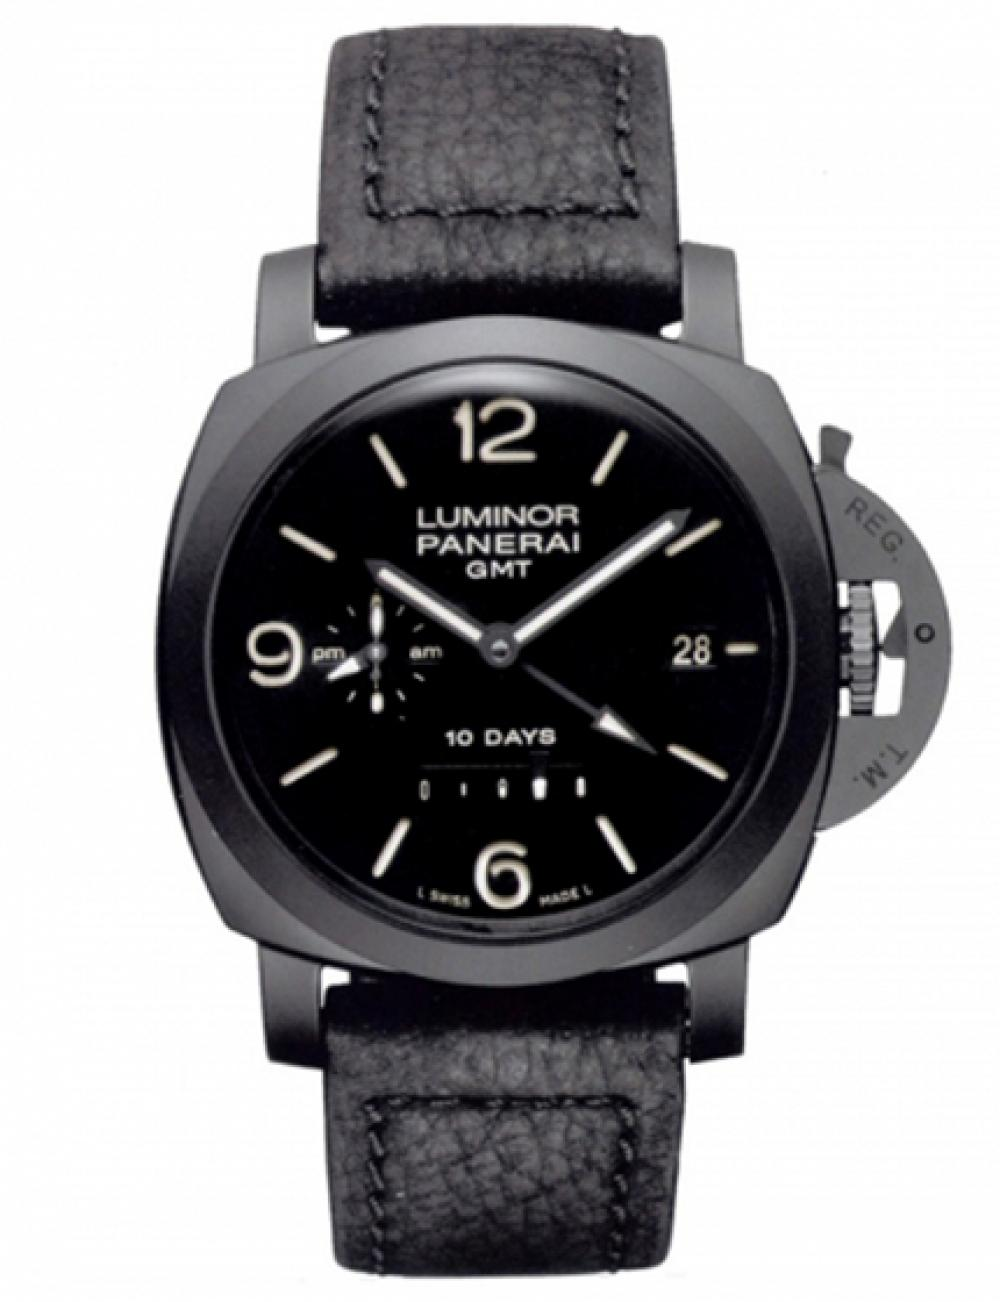 OFFICINE PANERAI LUMINOR 1950 44 MM 10 DAYS GMT PAM00335